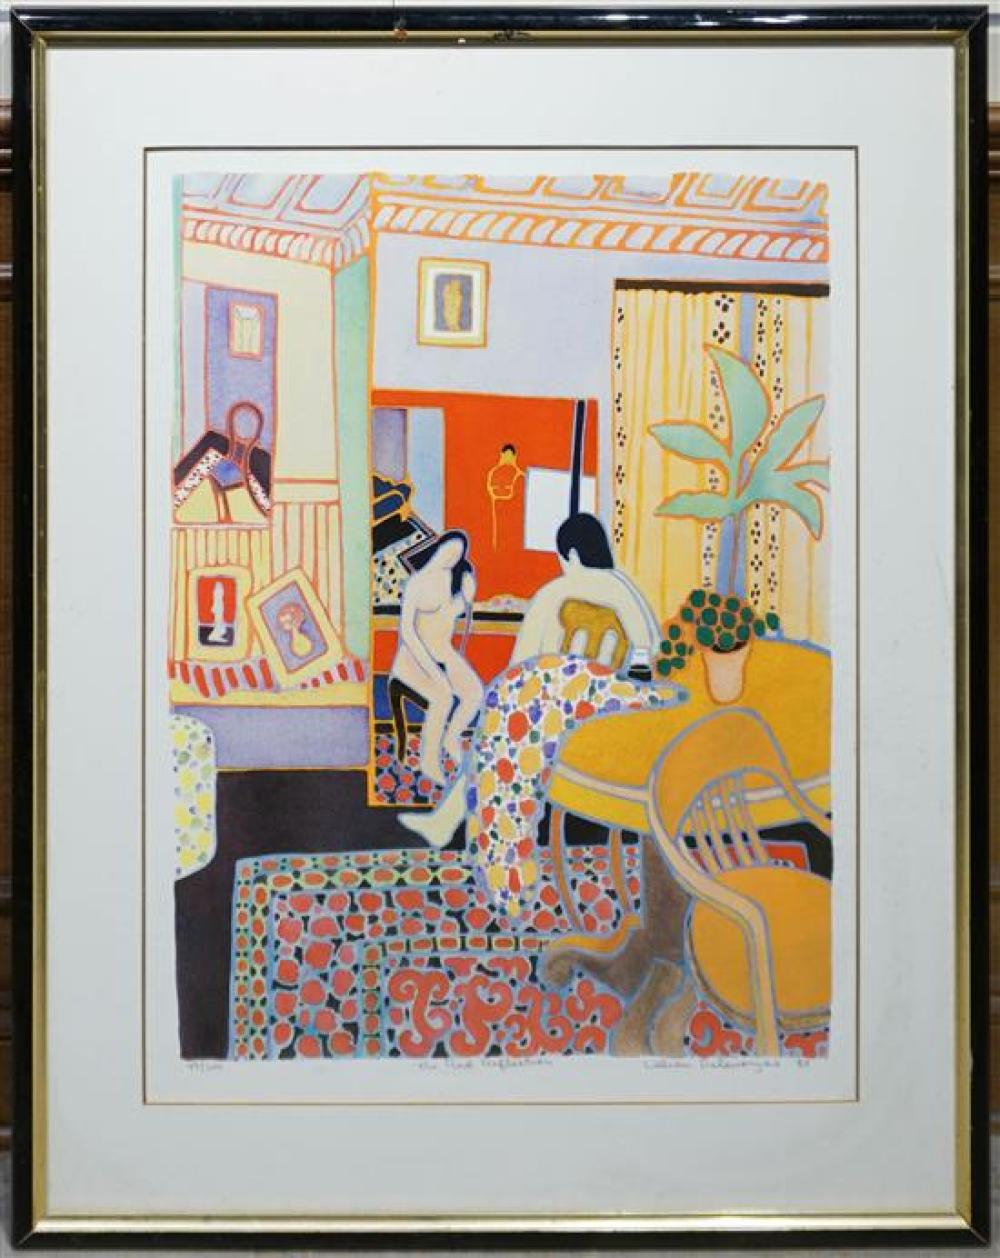 William Delevorysa(?), The Red Reflection, Serigraph, 49/200, Frame: 39-1/2 x 31-3/4 in